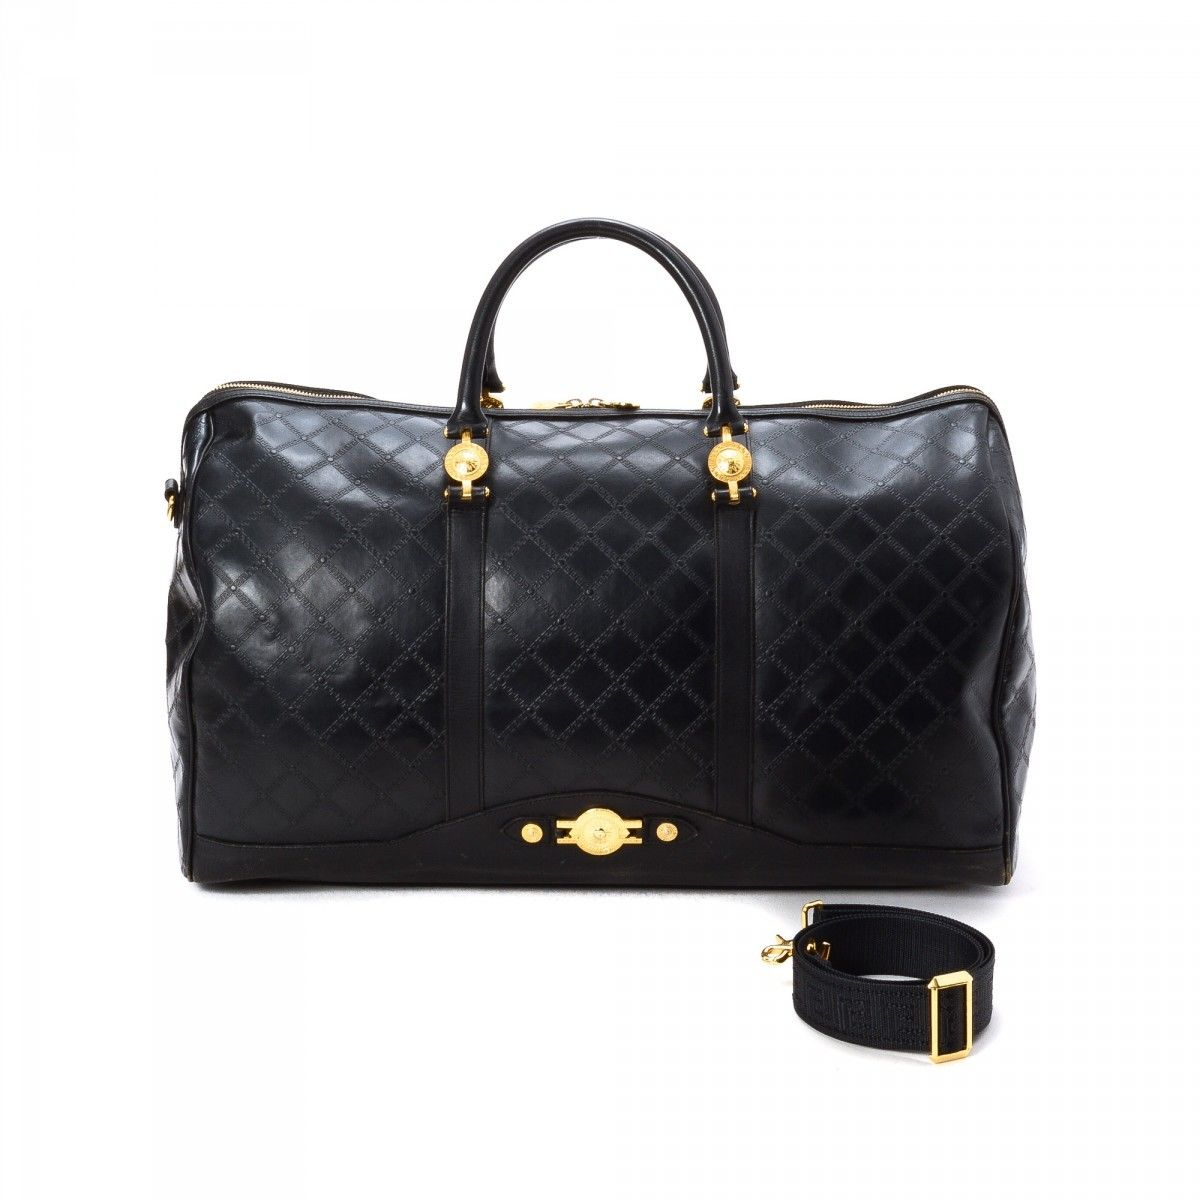 8f578d92abba Travel Bag. LXRandCo guarantees this is an authentic vintage Versace travel  bag. This classic overnight bag comes in beautiful leather. Good condition   (AB)